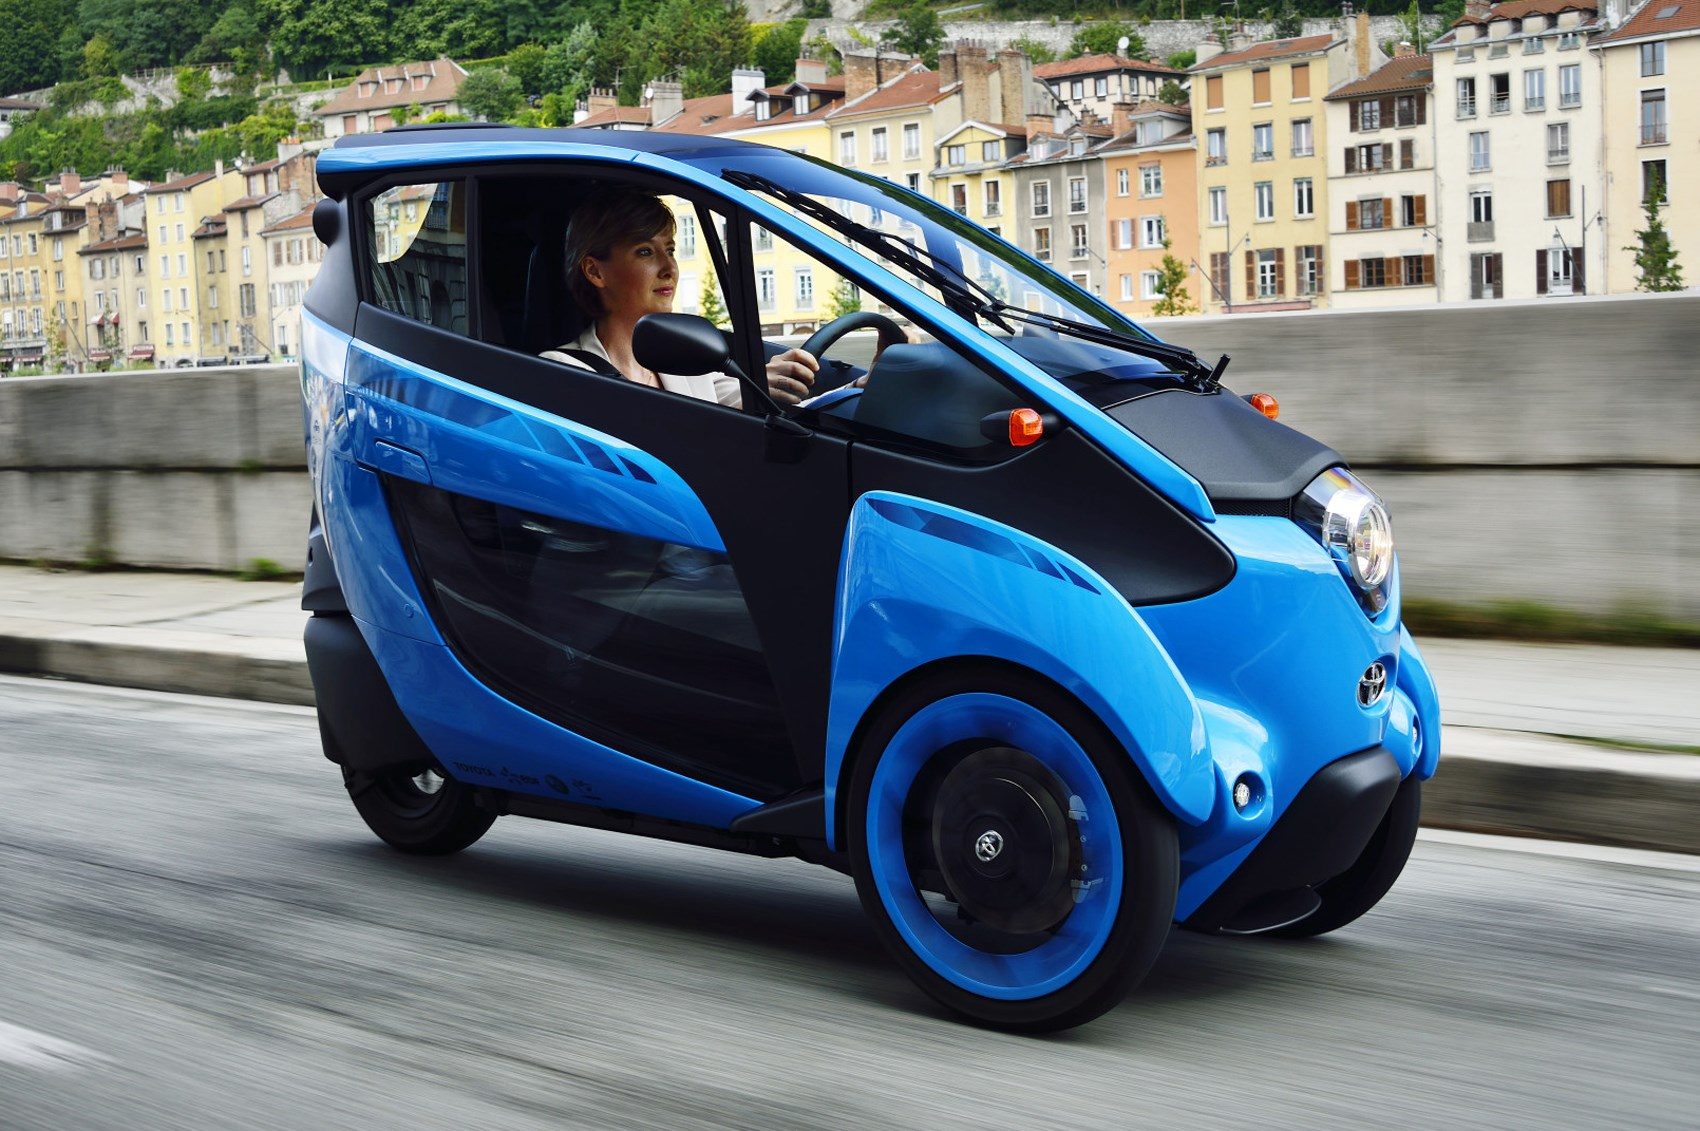 Toyota i-Road: does it work?